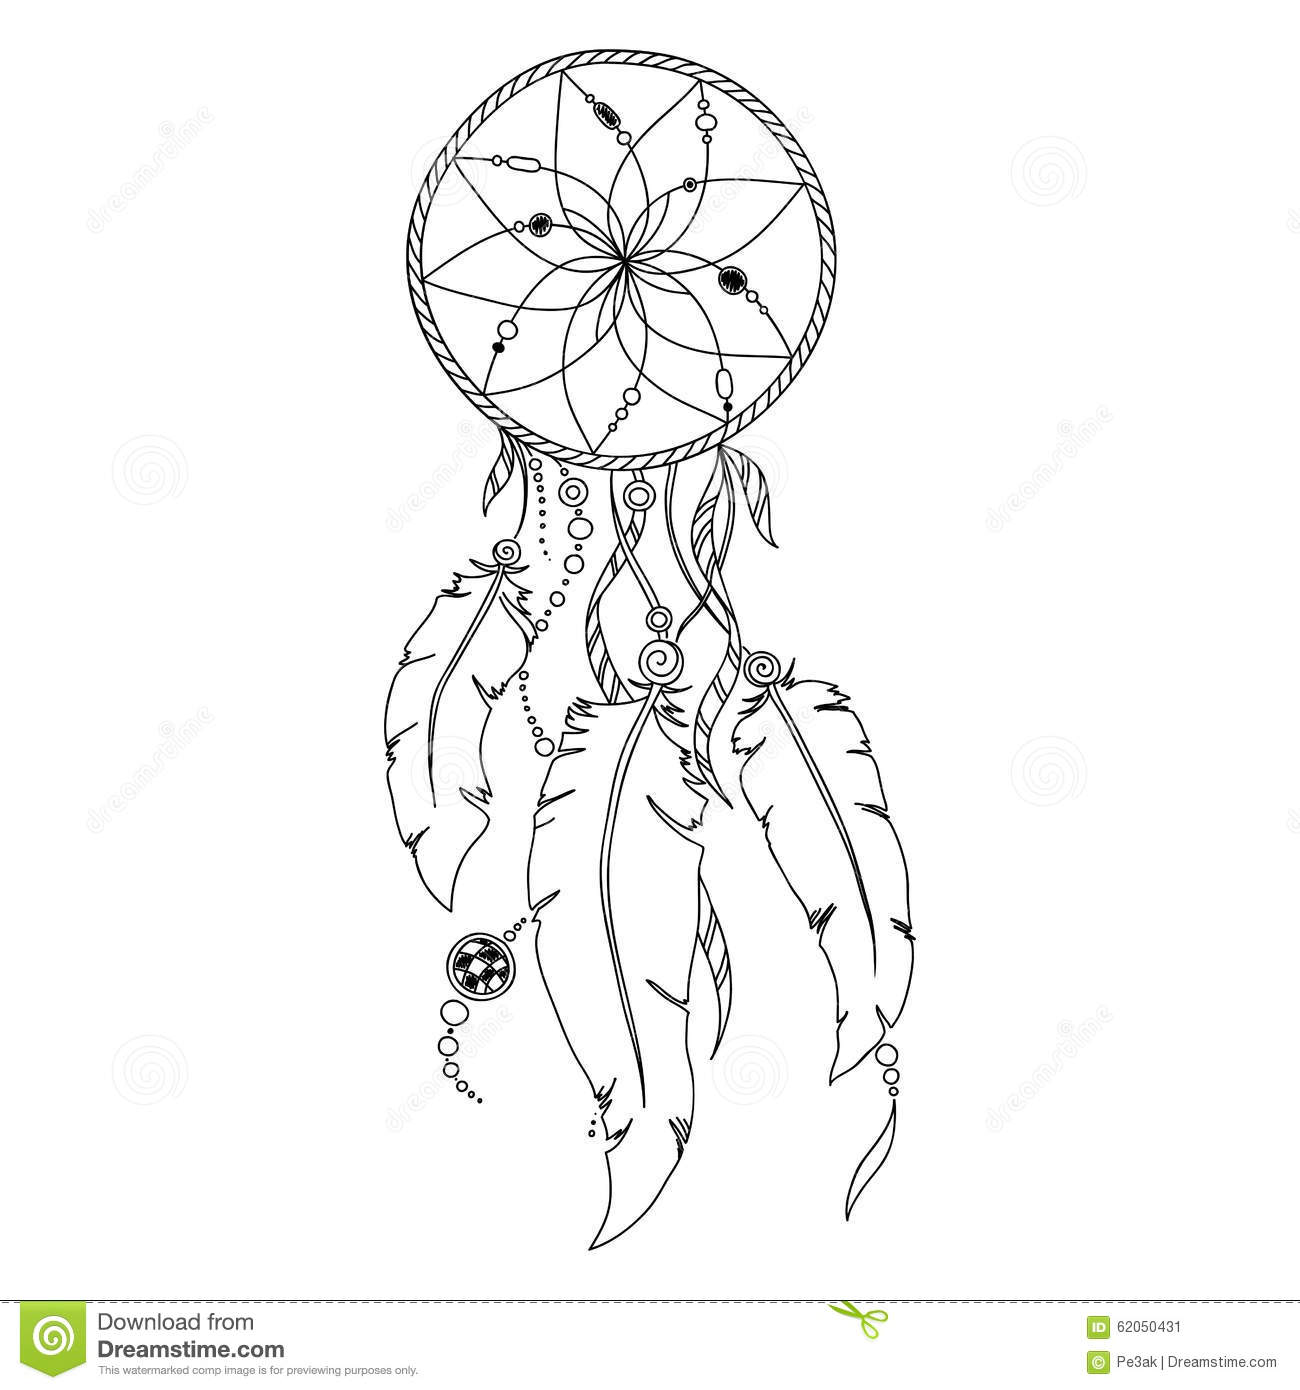 The coloring book tattoo - Pattern For Coloring Book Dream Catcher